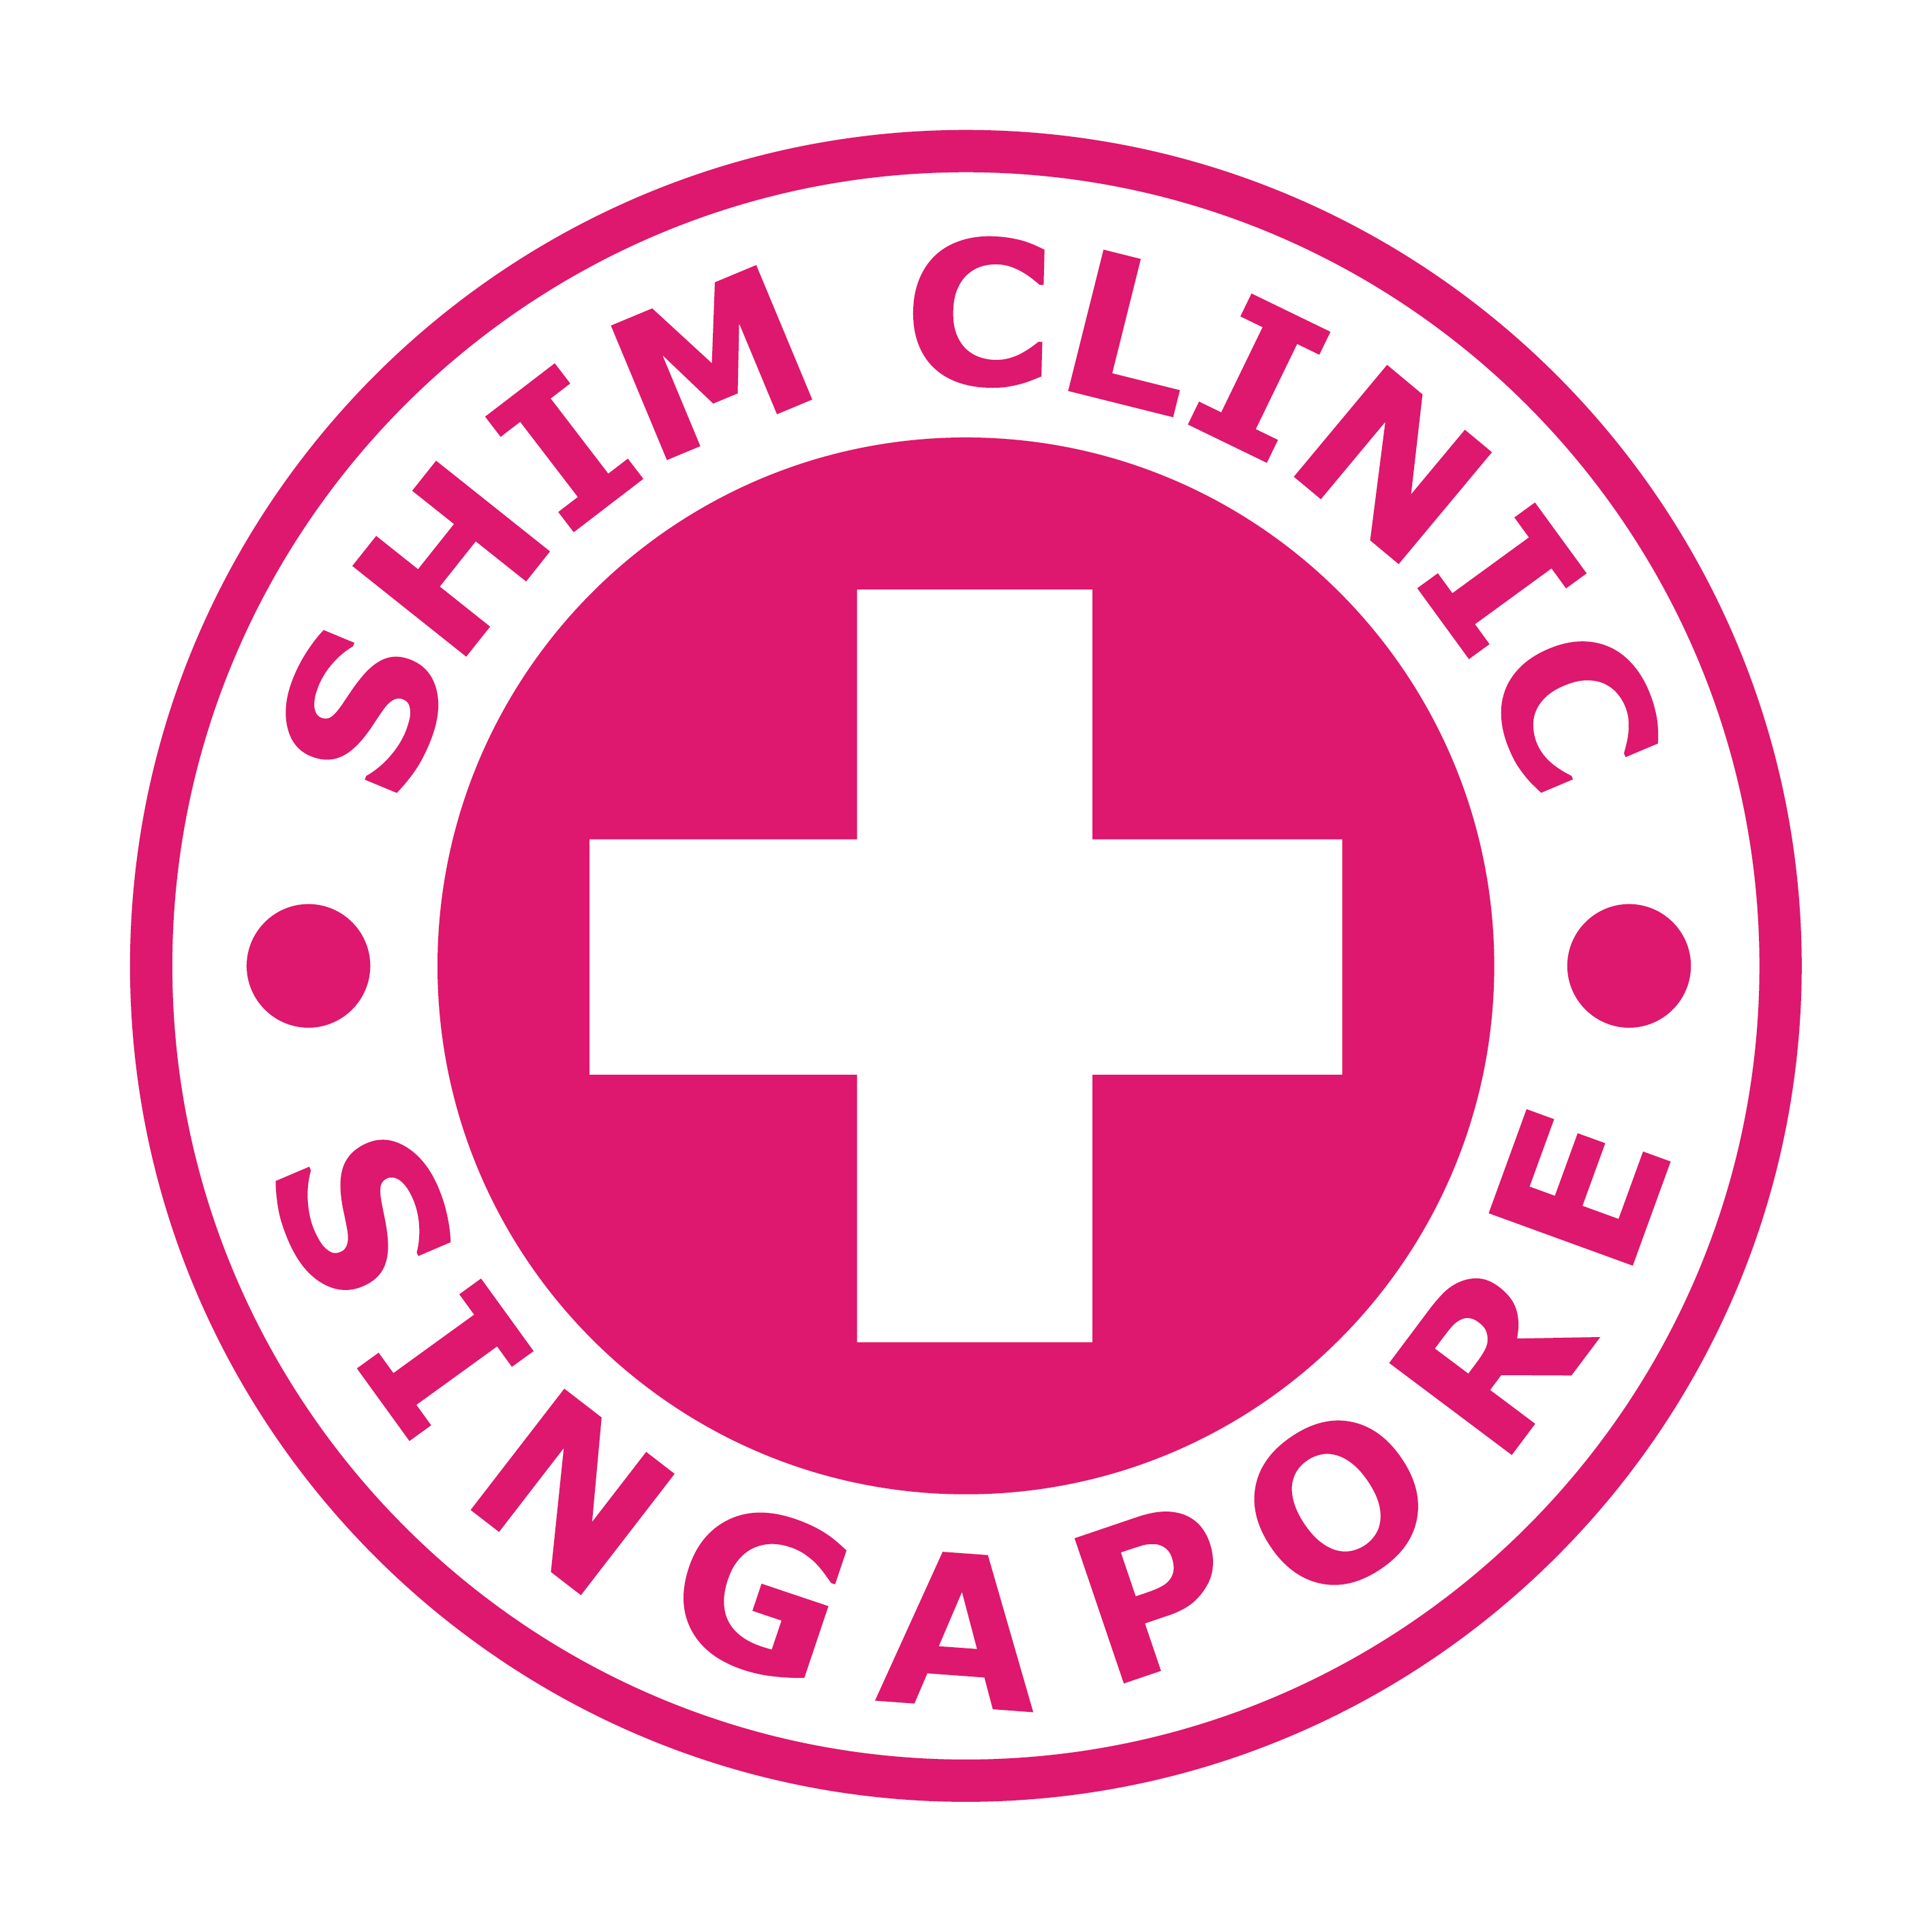 Shim Clinic Providing HIV Testing and Screening Services in Singapore